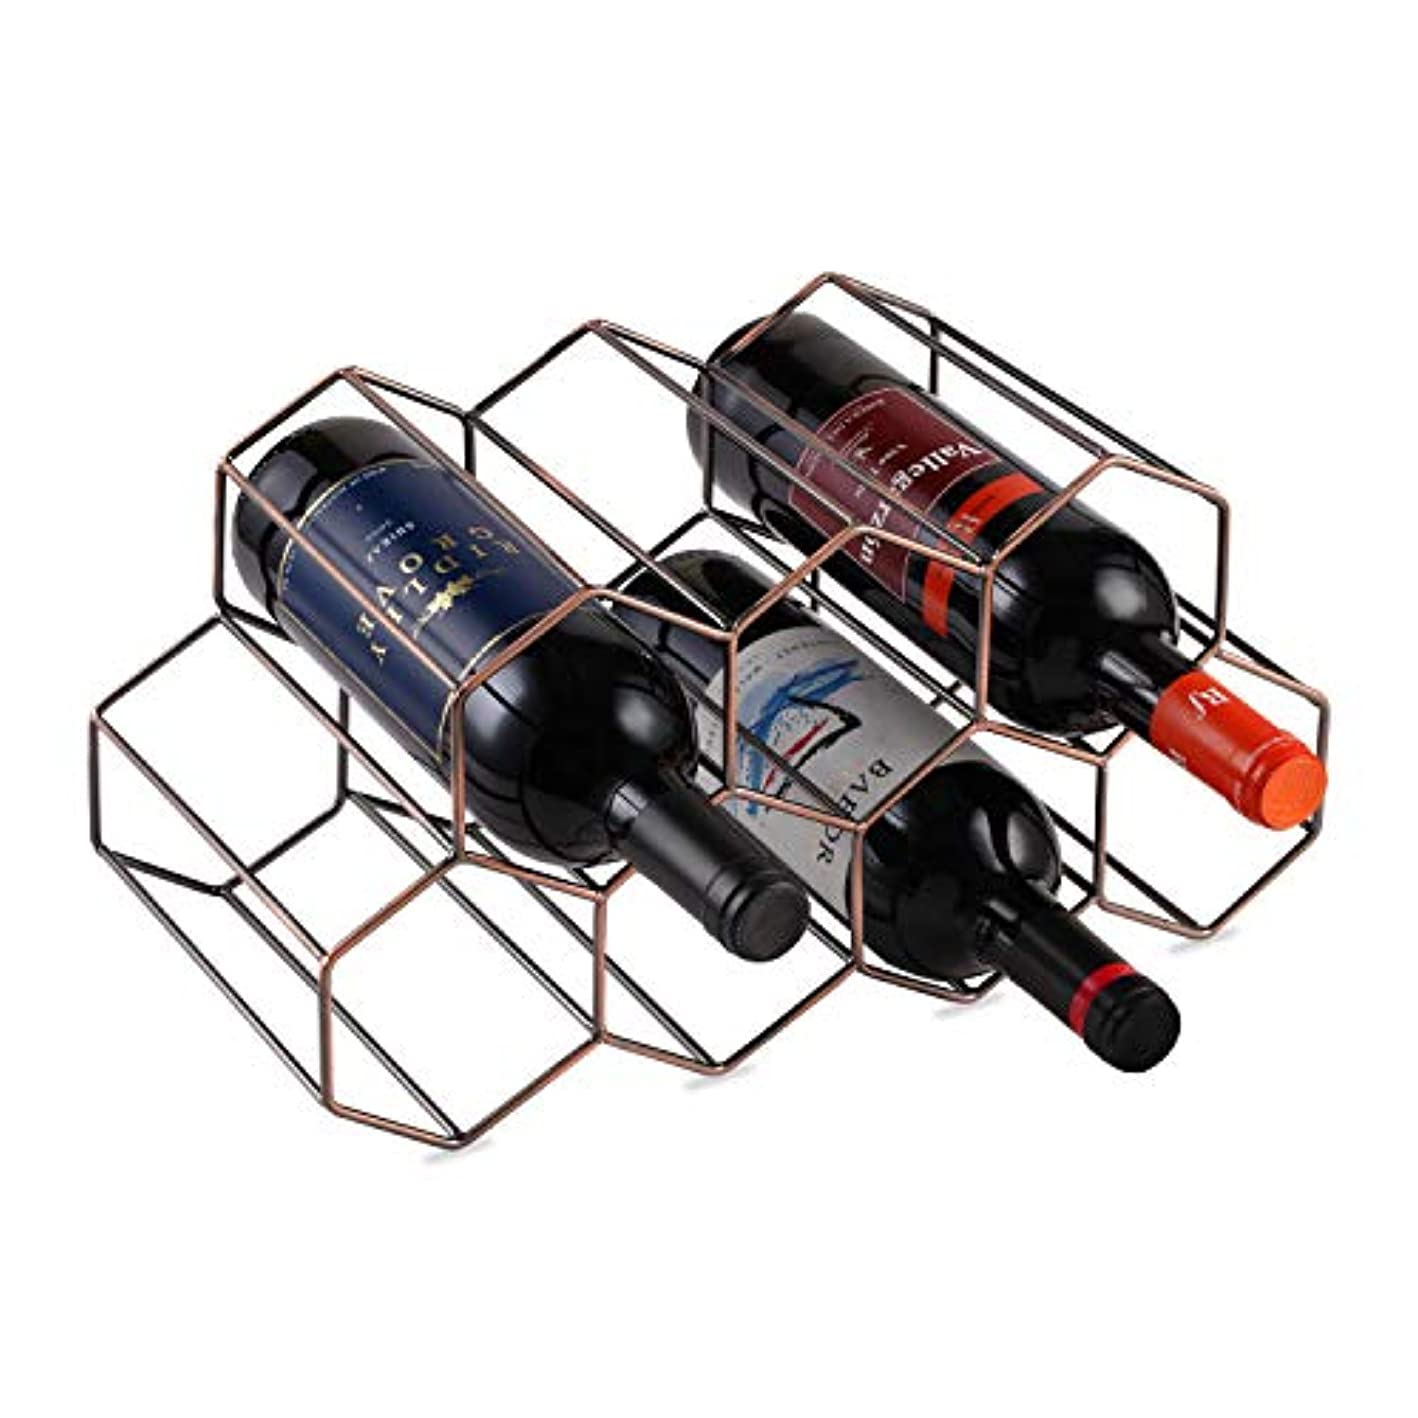 7 Bottles Metal Wine Rack, Countertop Free-stand Wine Storage Holder, Space Saver Protector for Red & White Wines - Bronze